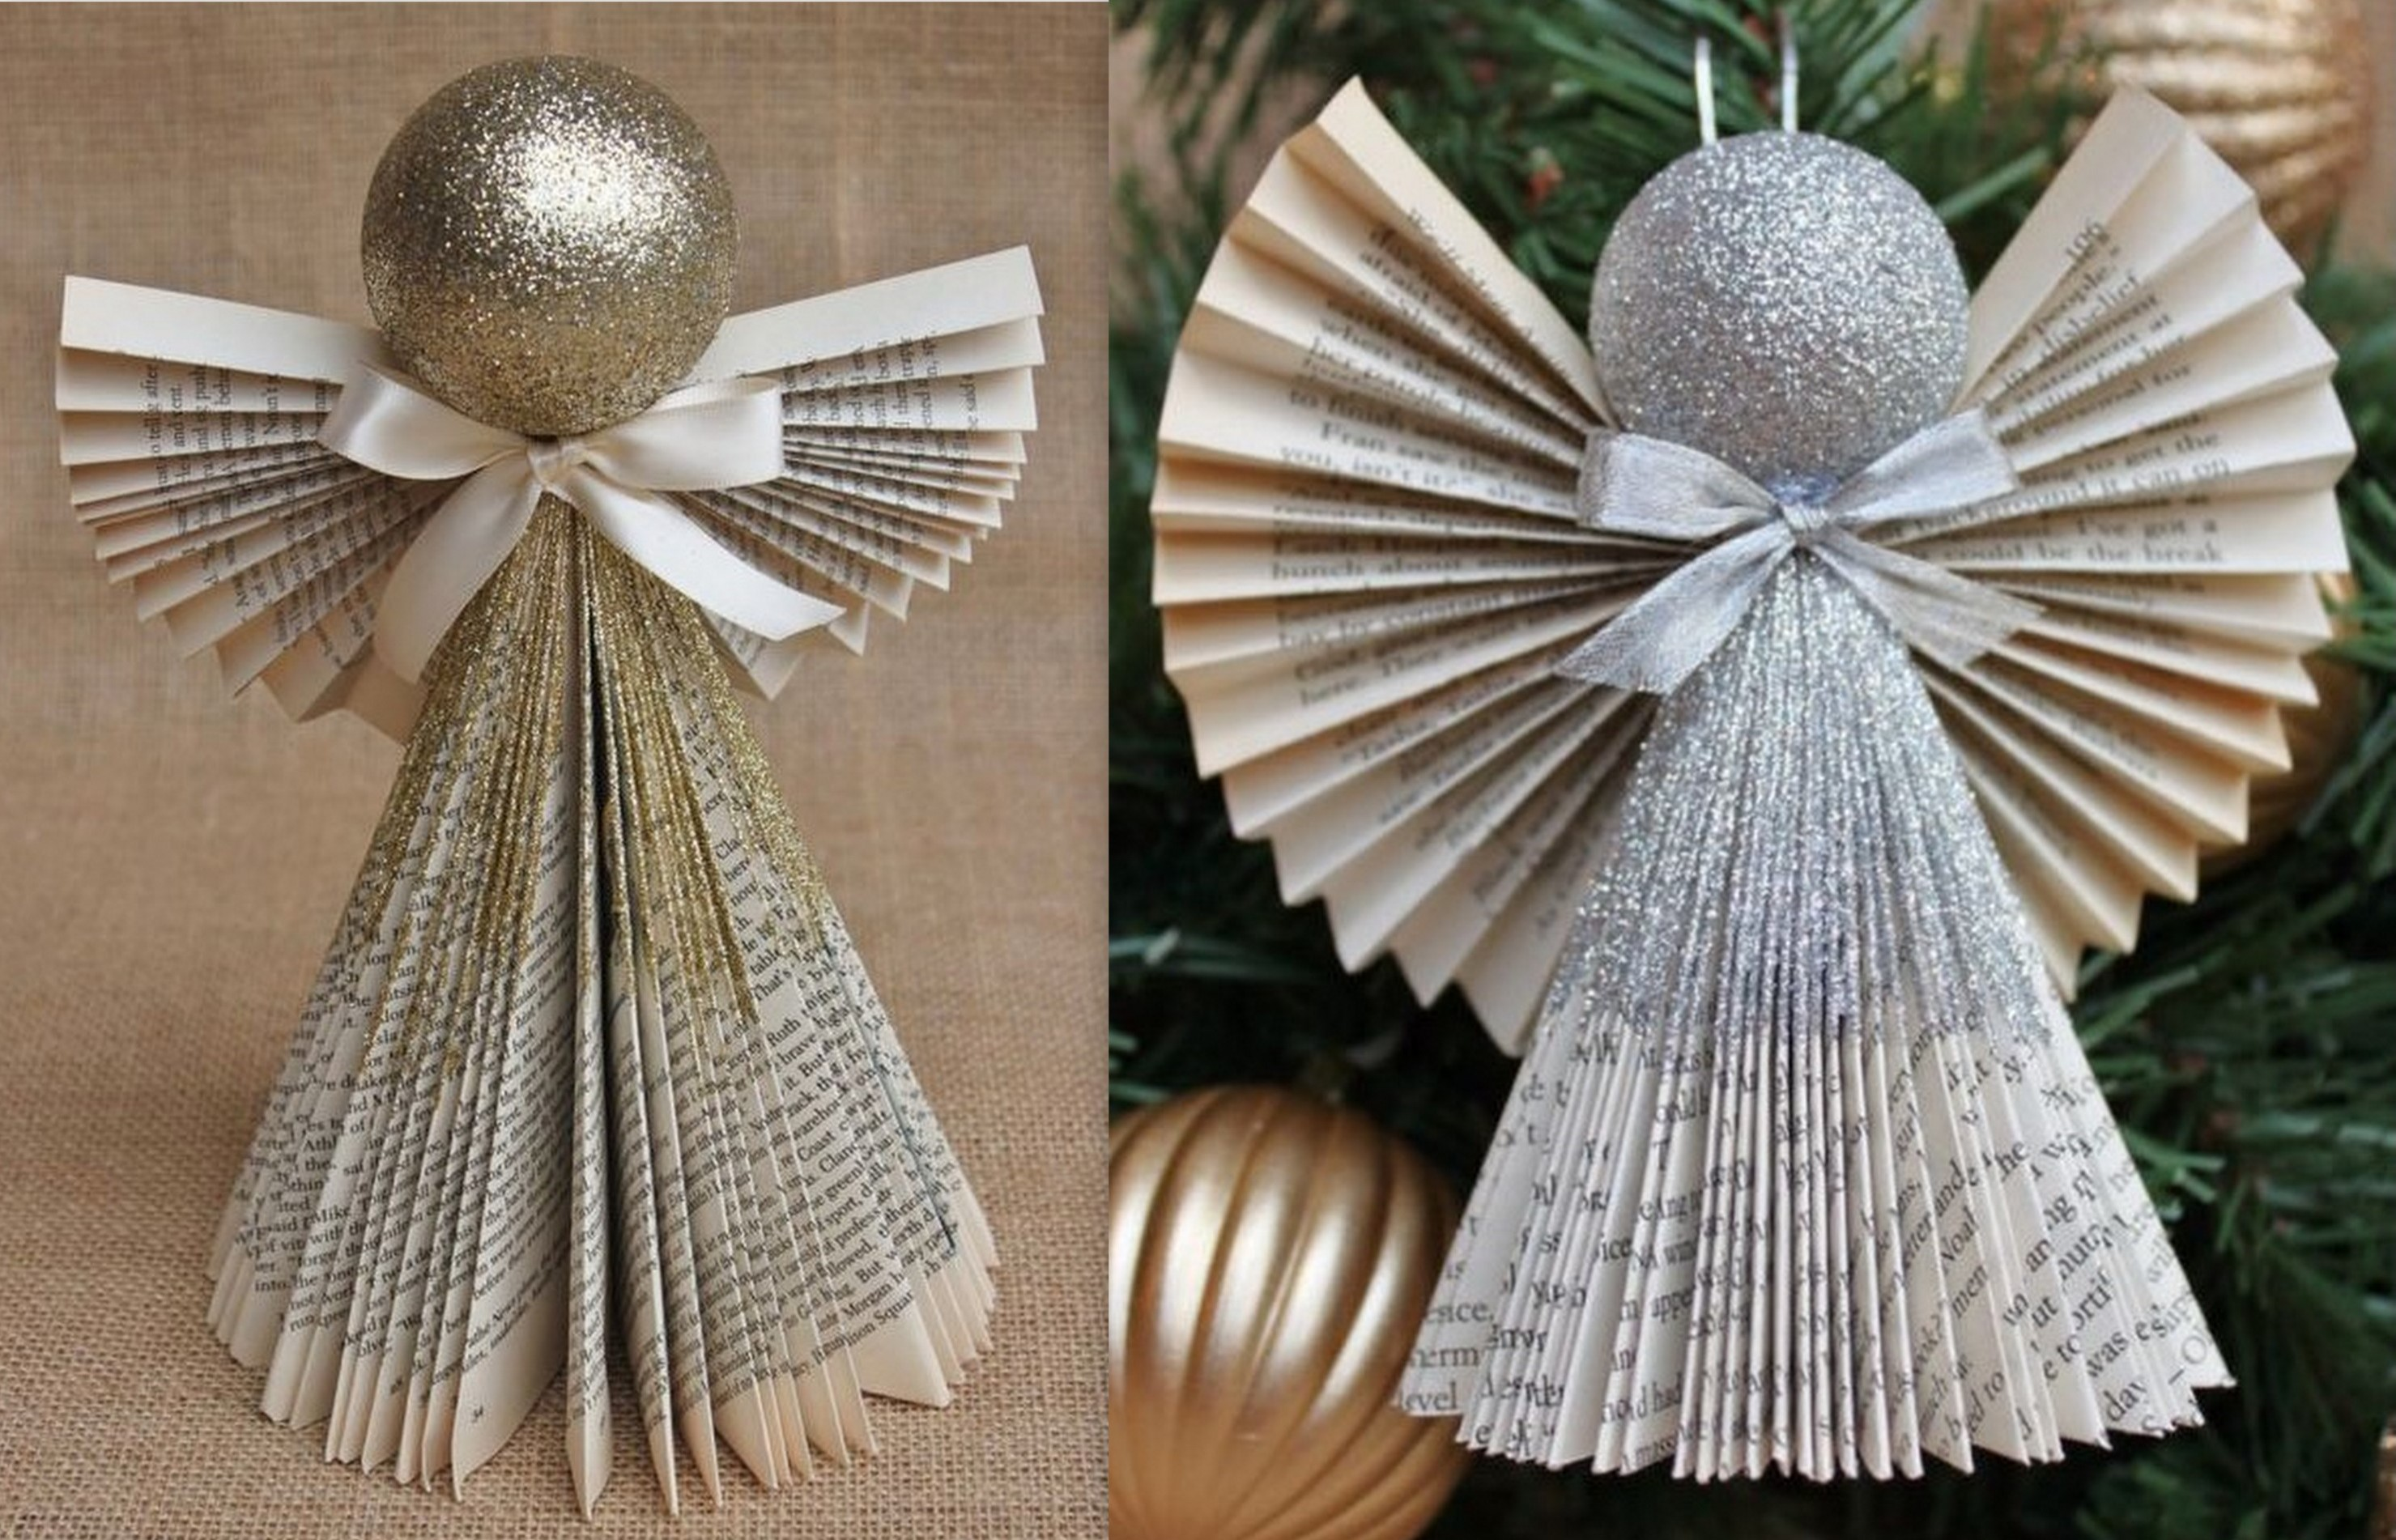 Faire des anges de Noël en pliage papier